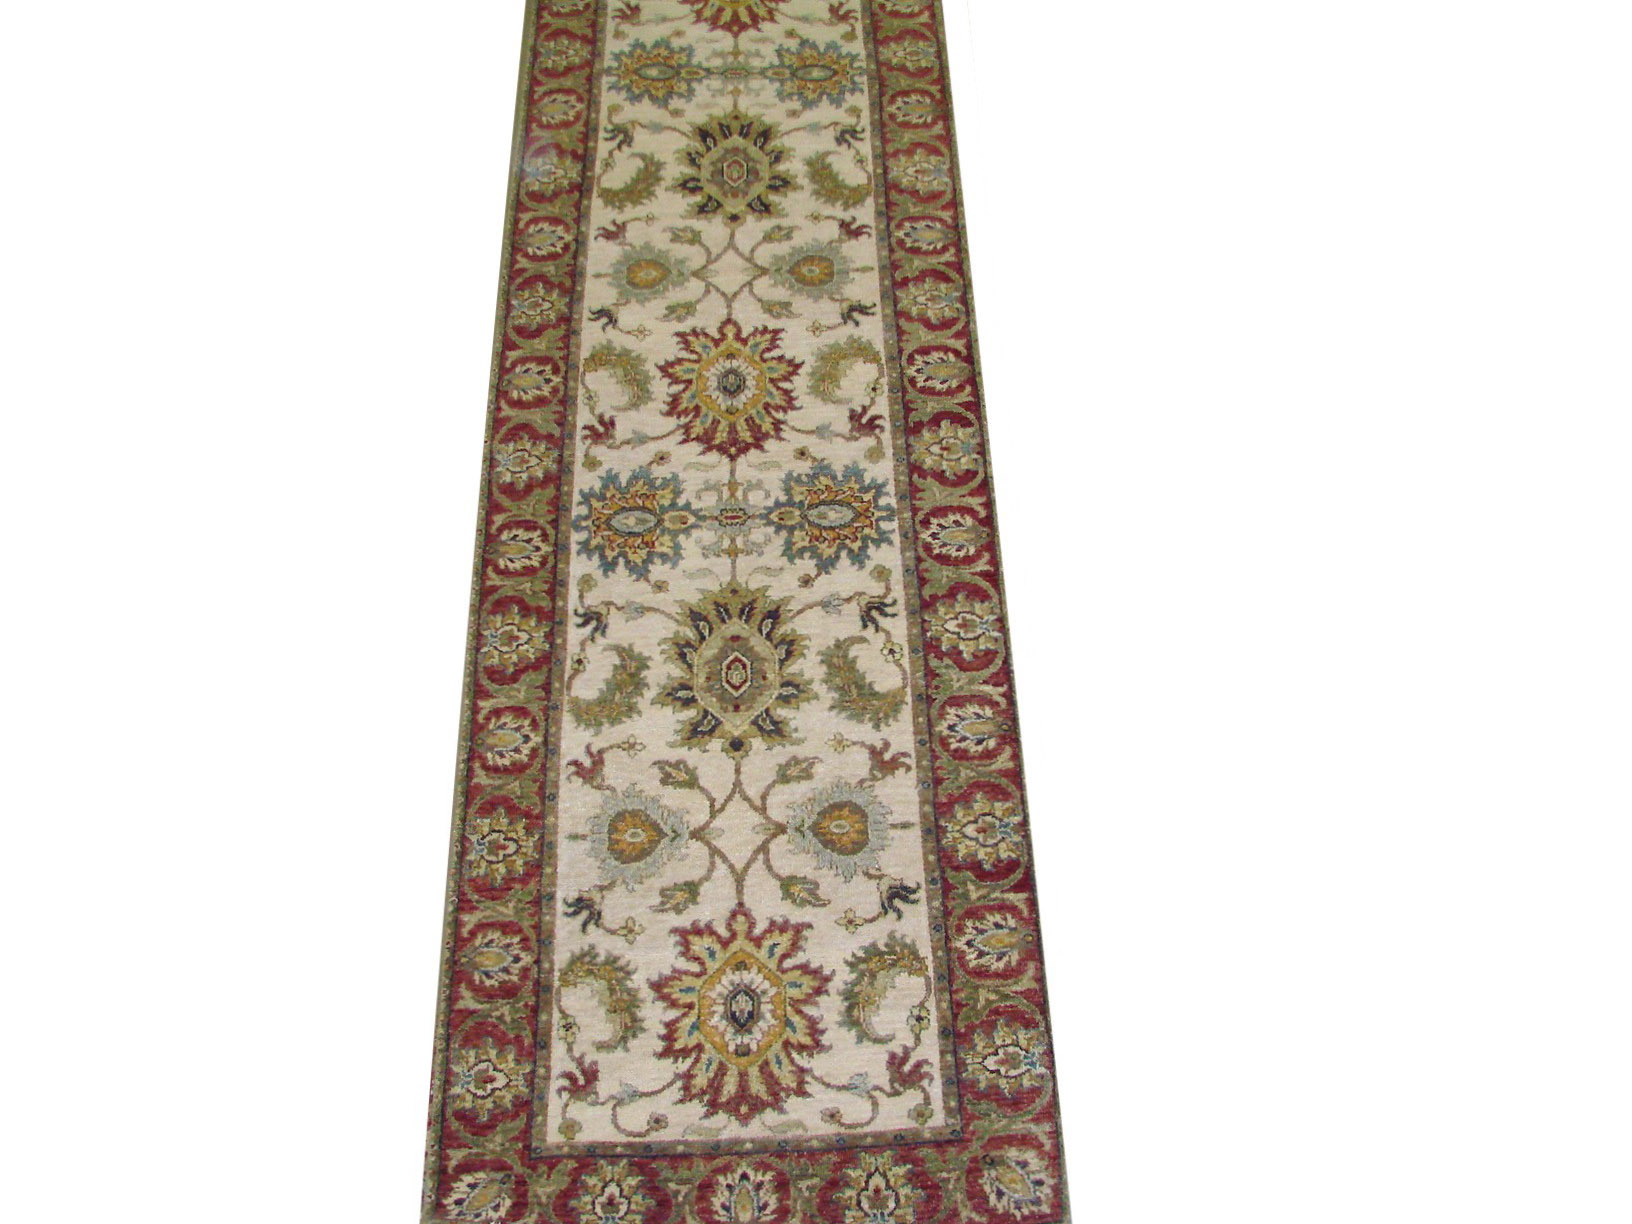 13 & Longer Runner Traditional Hand Knotted Wool Area Rug - MR022003